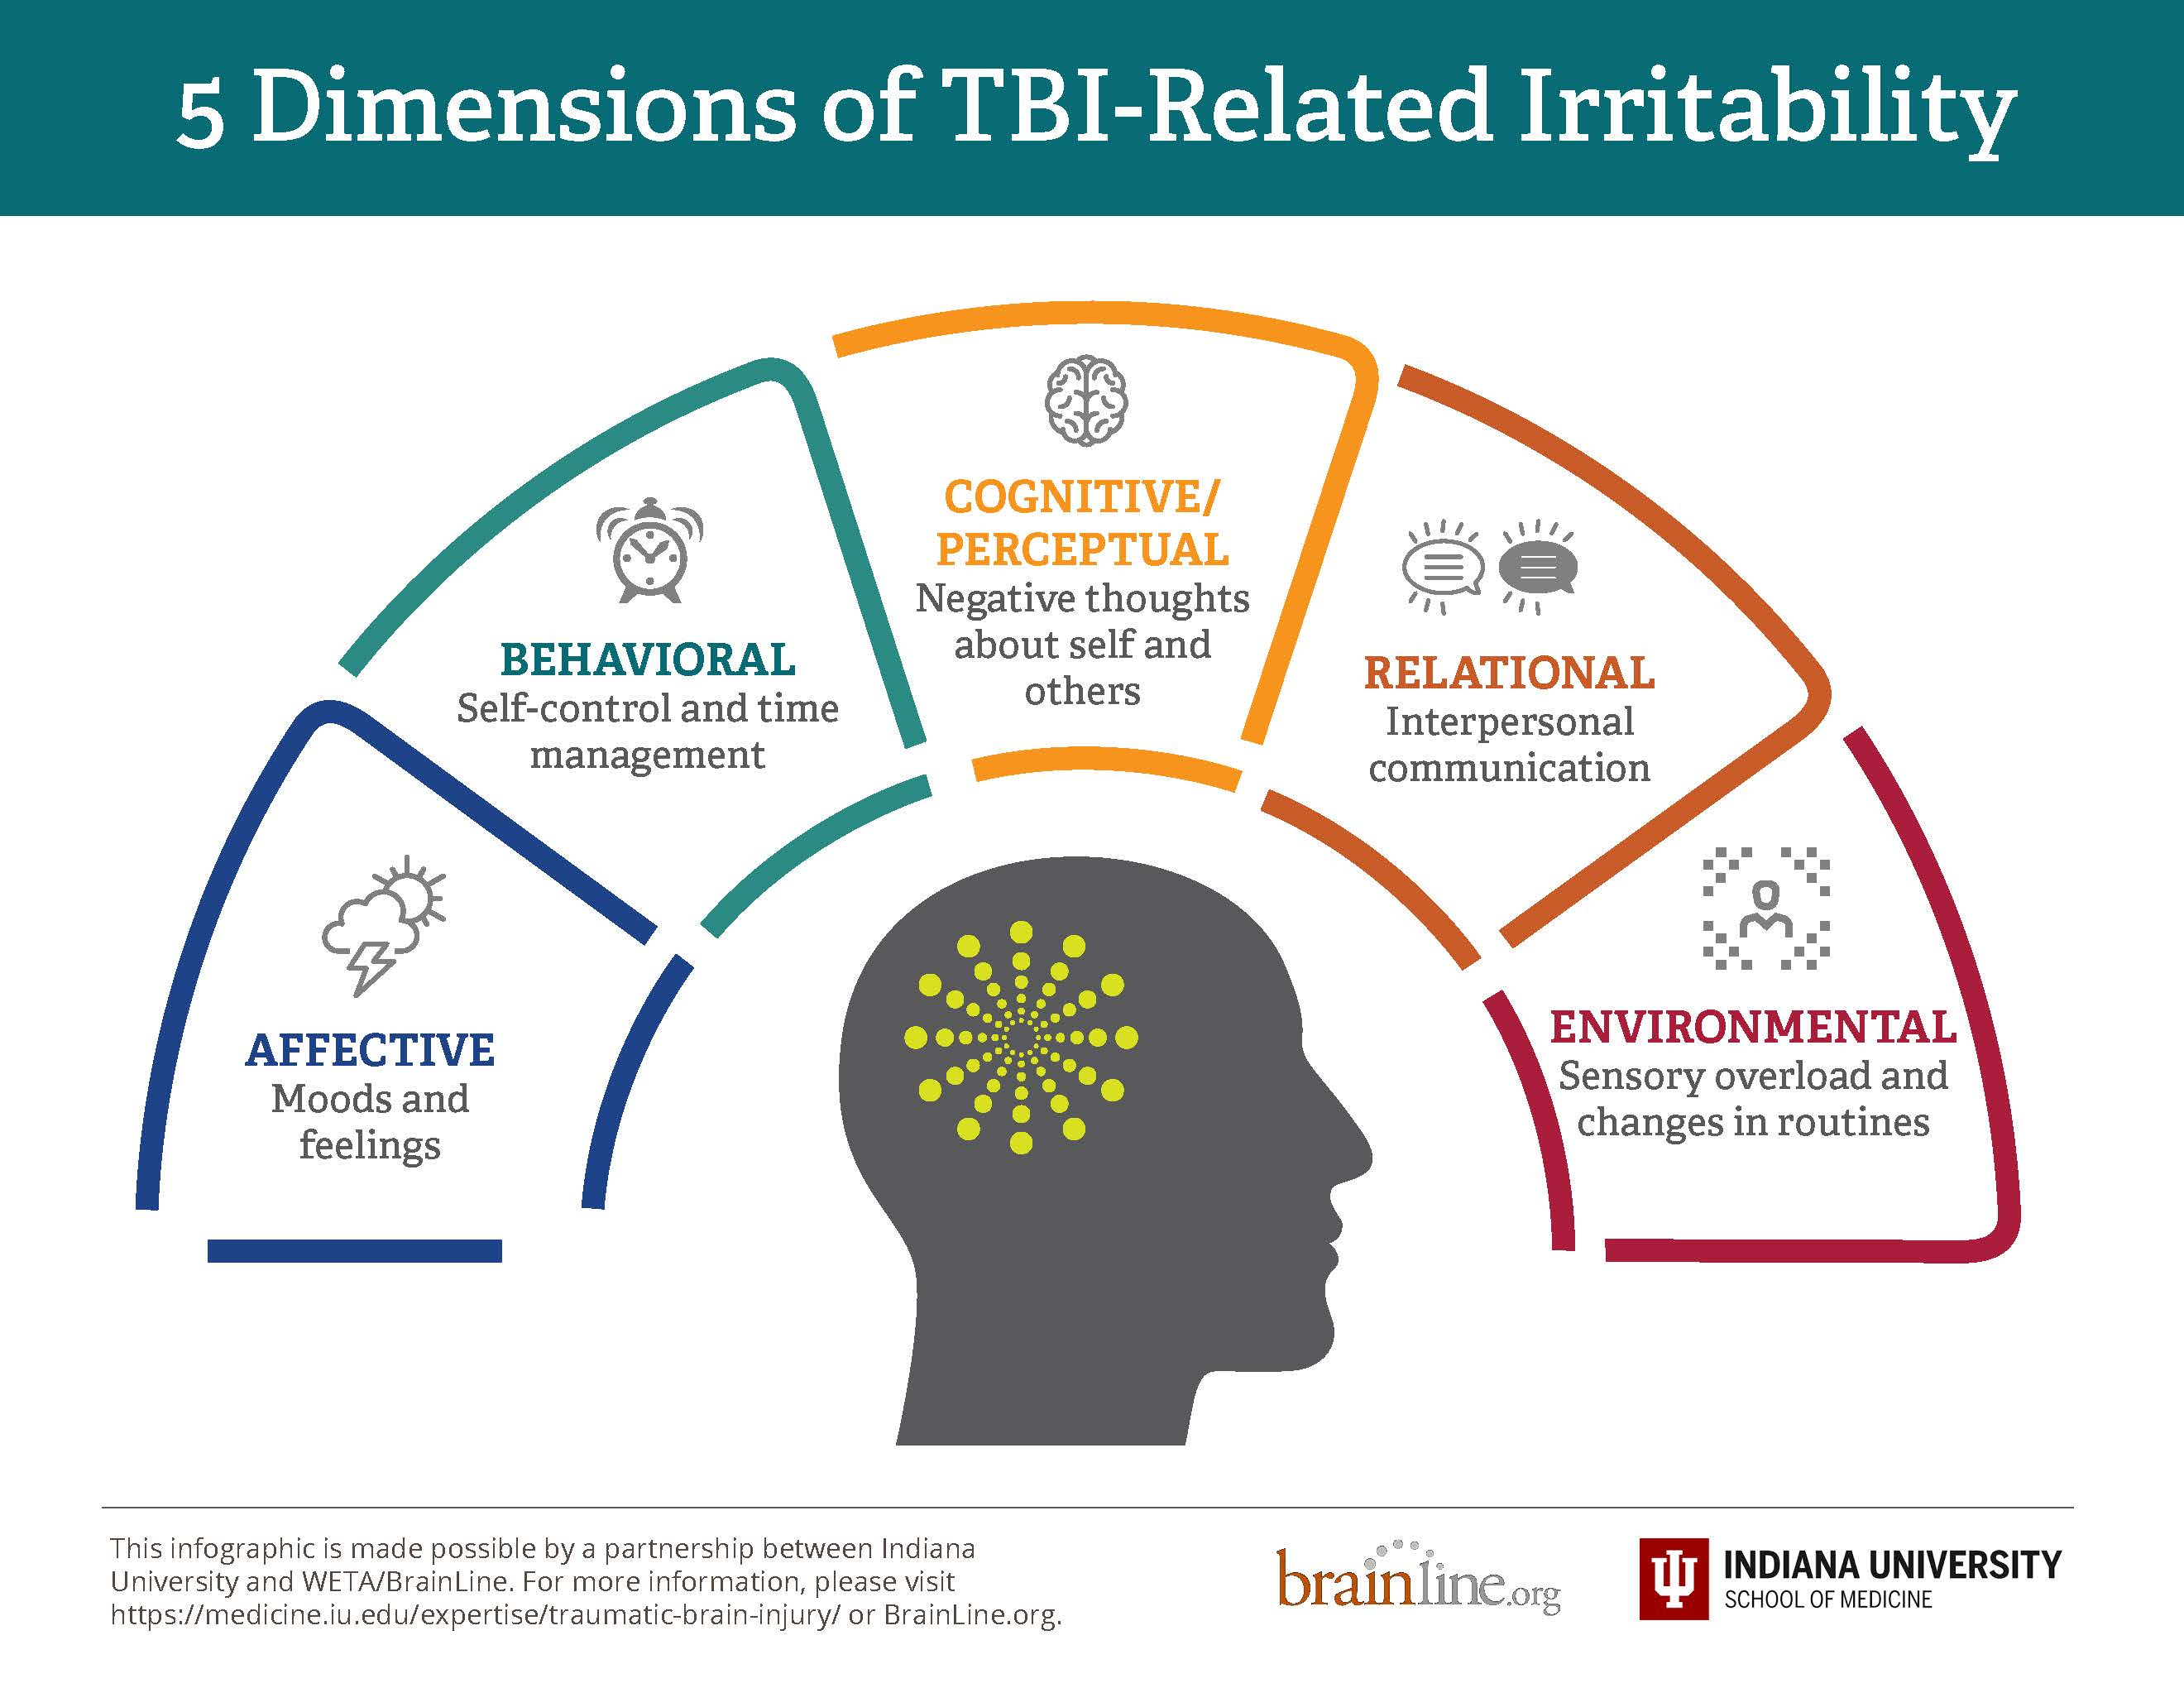 infographic on five dimensions of irritability page 1